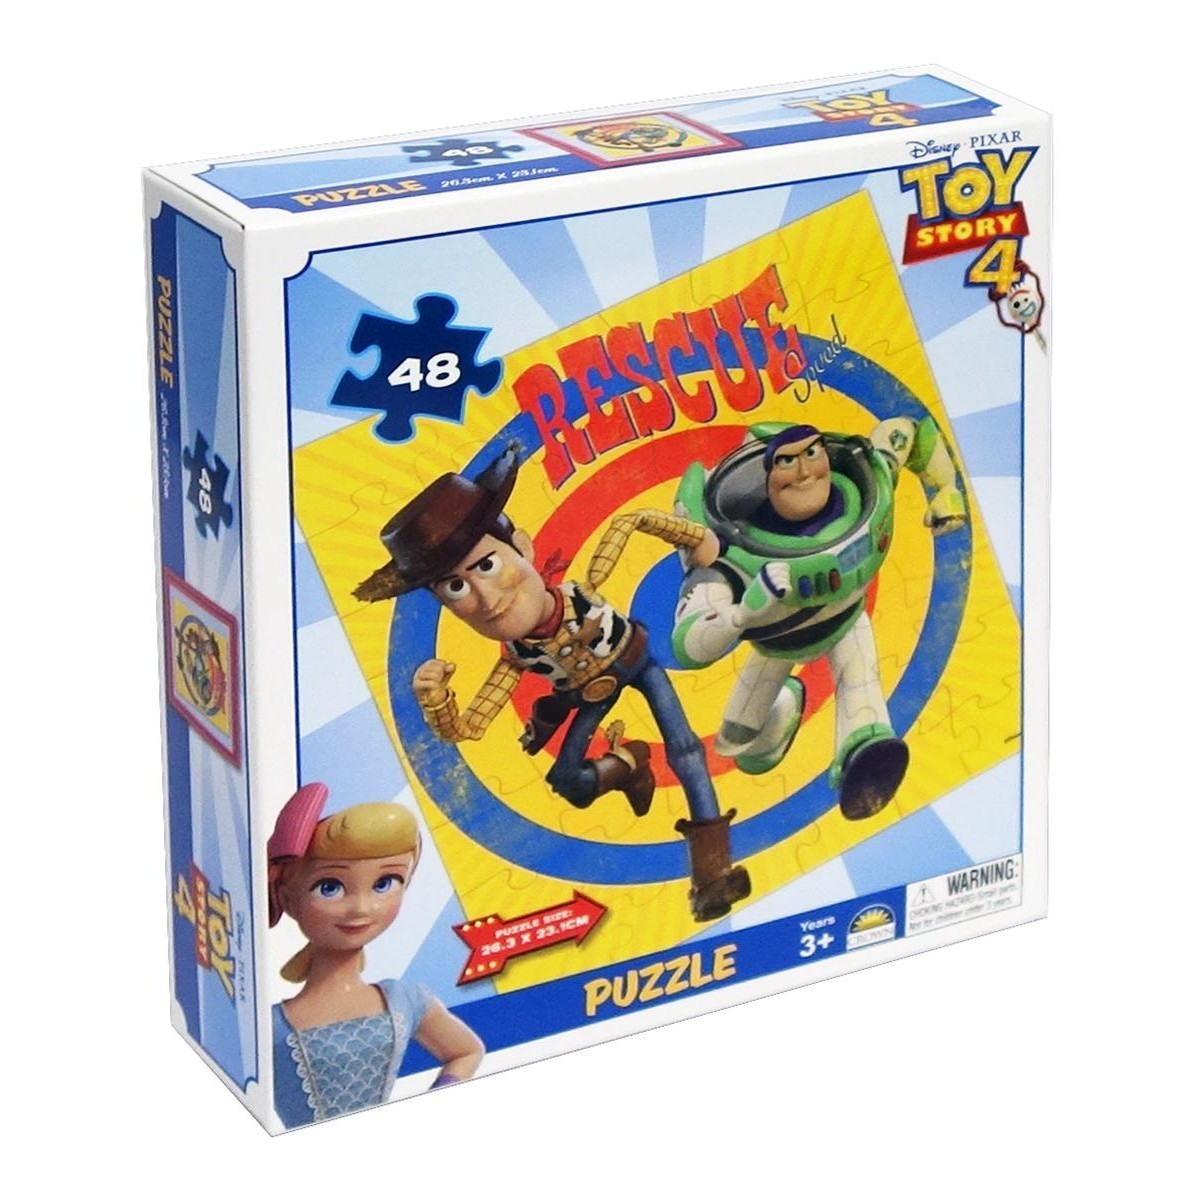 Hula Hoop Big W Toy Story 4 Boxed Puzzle 48 Pieces